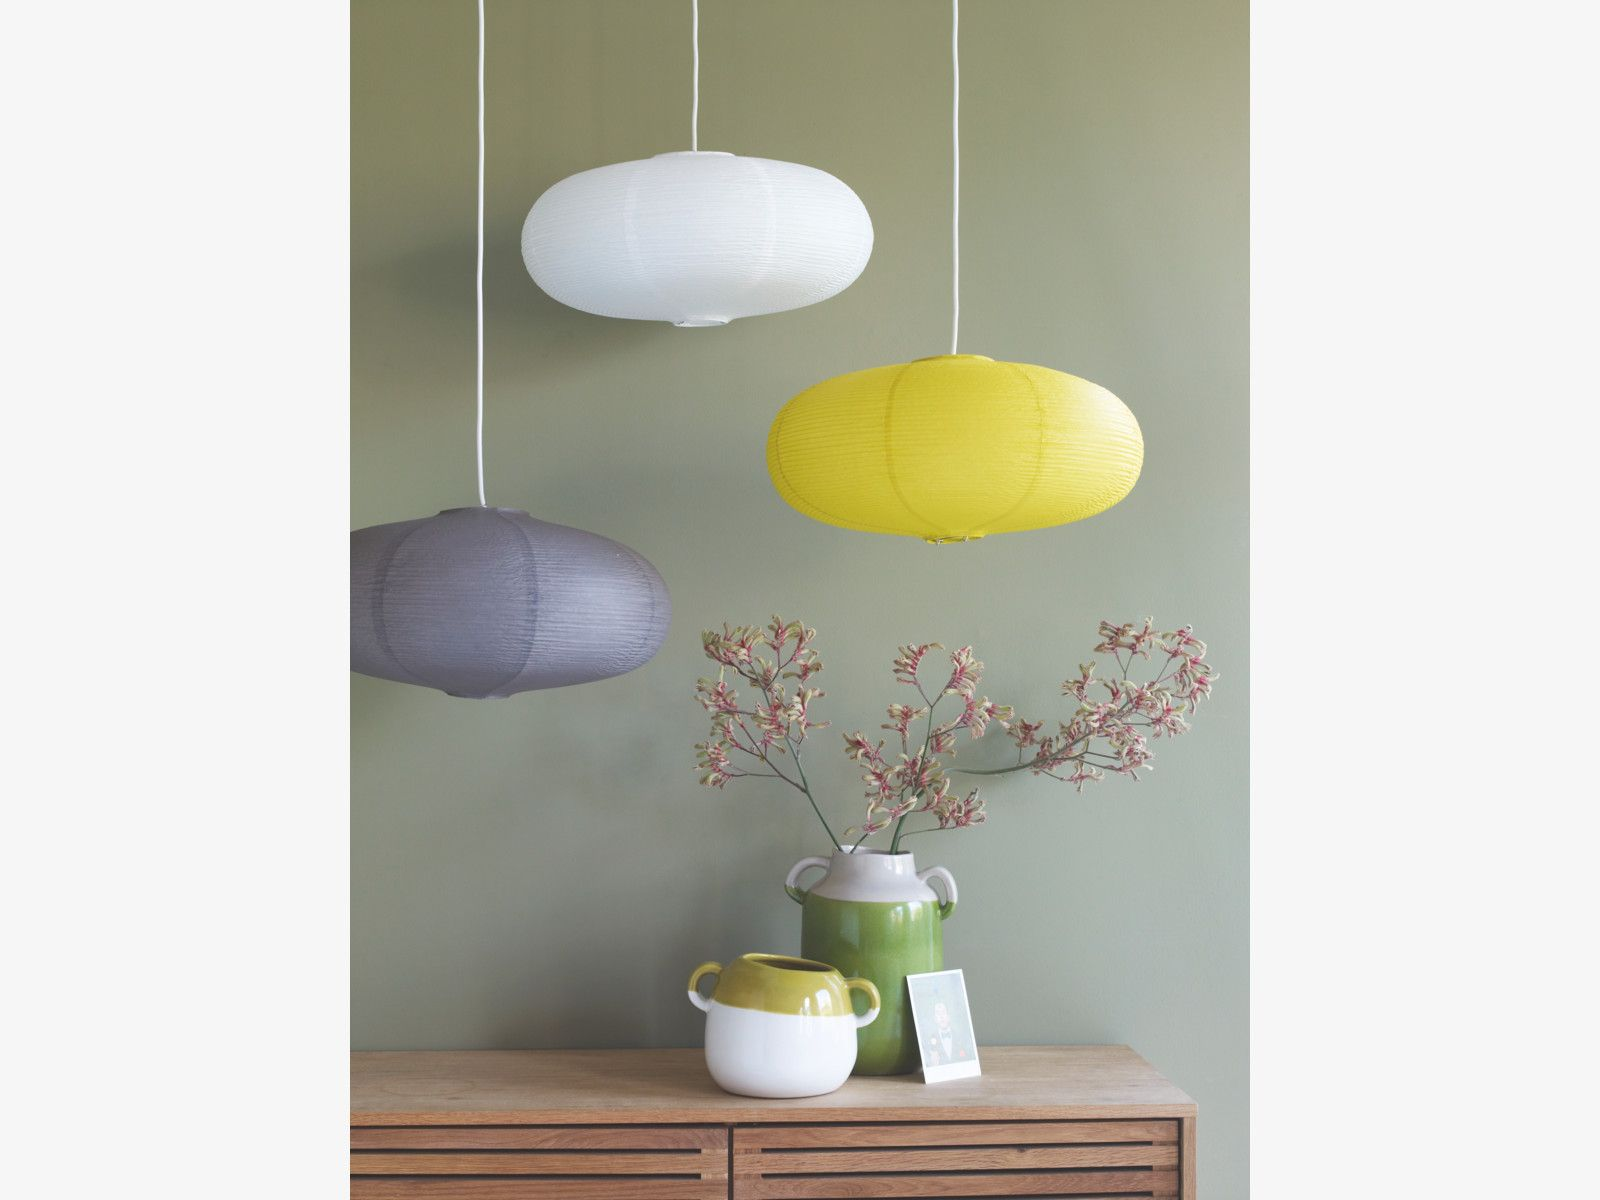 SHIRO White Paper Easy-to-fit Ceiling Shade